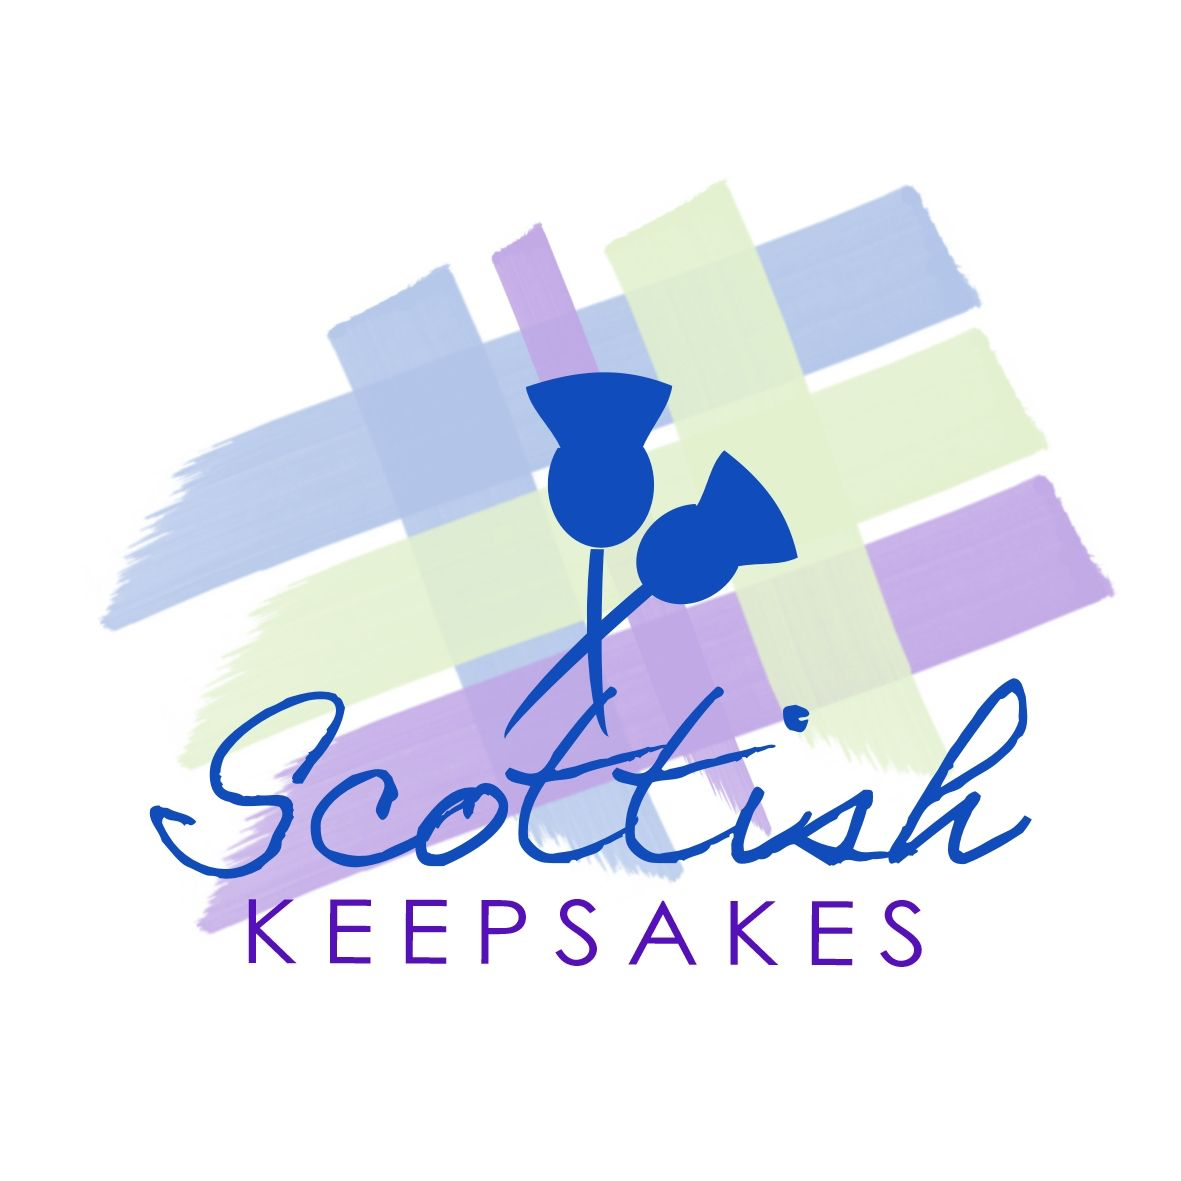 Scottish Keepsakes